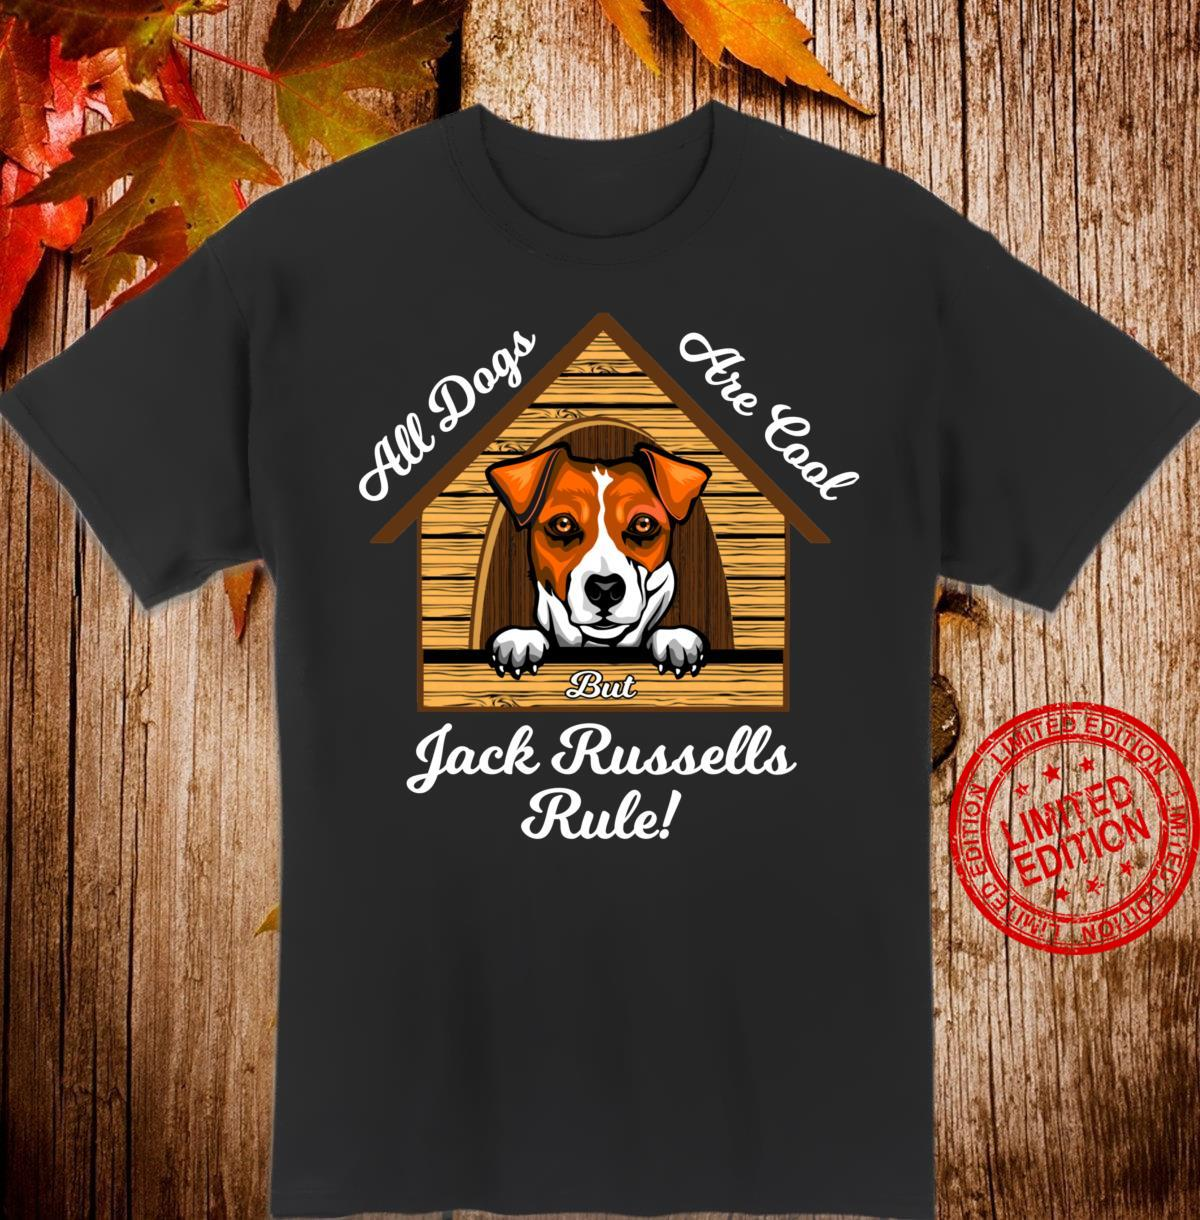 Jack Russell Dogs Are Cool Jack Russells Rule Shirt